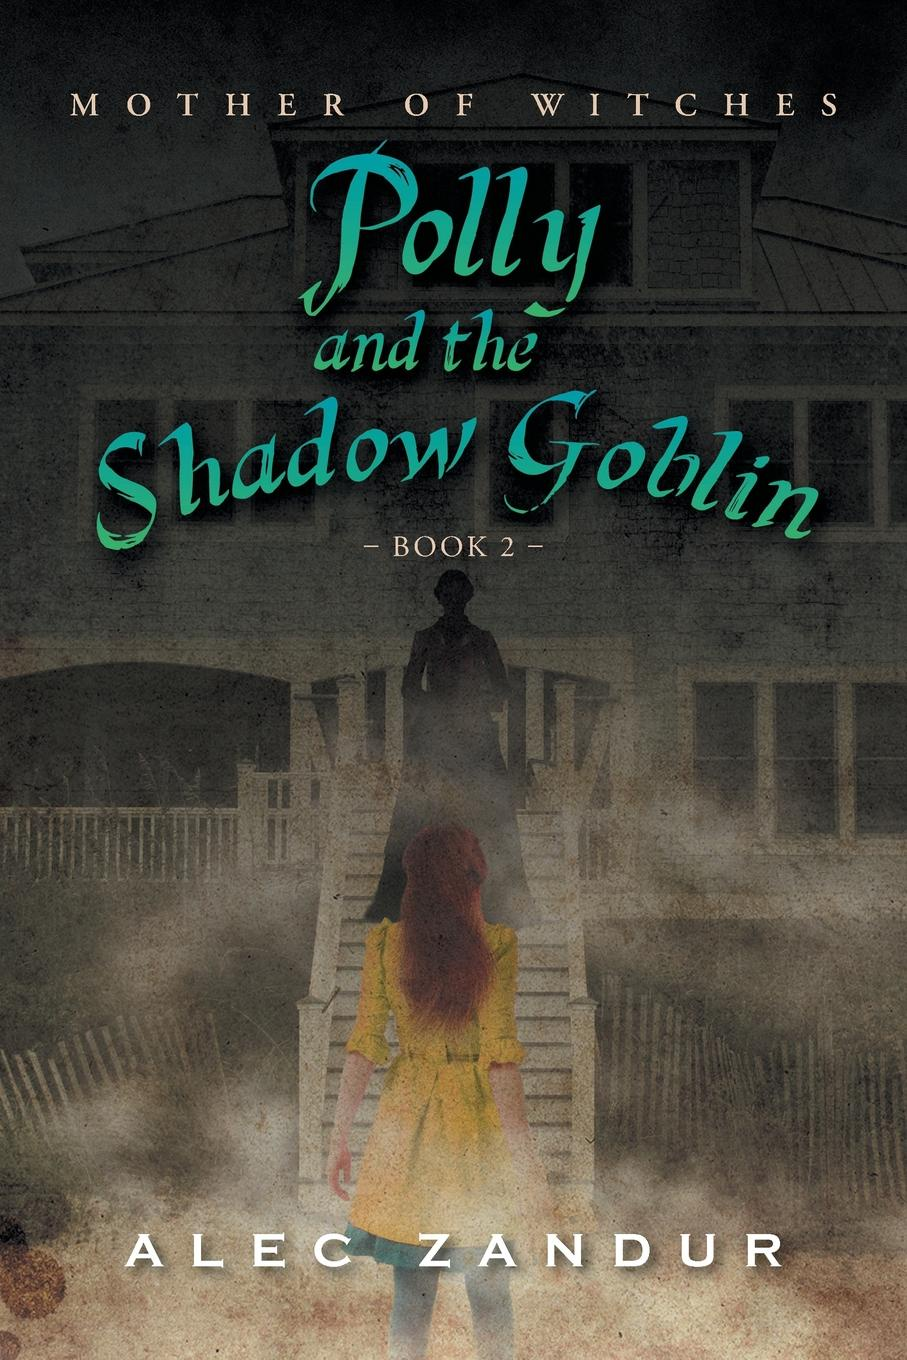 Alec Zandur Polly and the Shadow Goblin. Mother of Witches characterization of protea witches broom phytoplasma